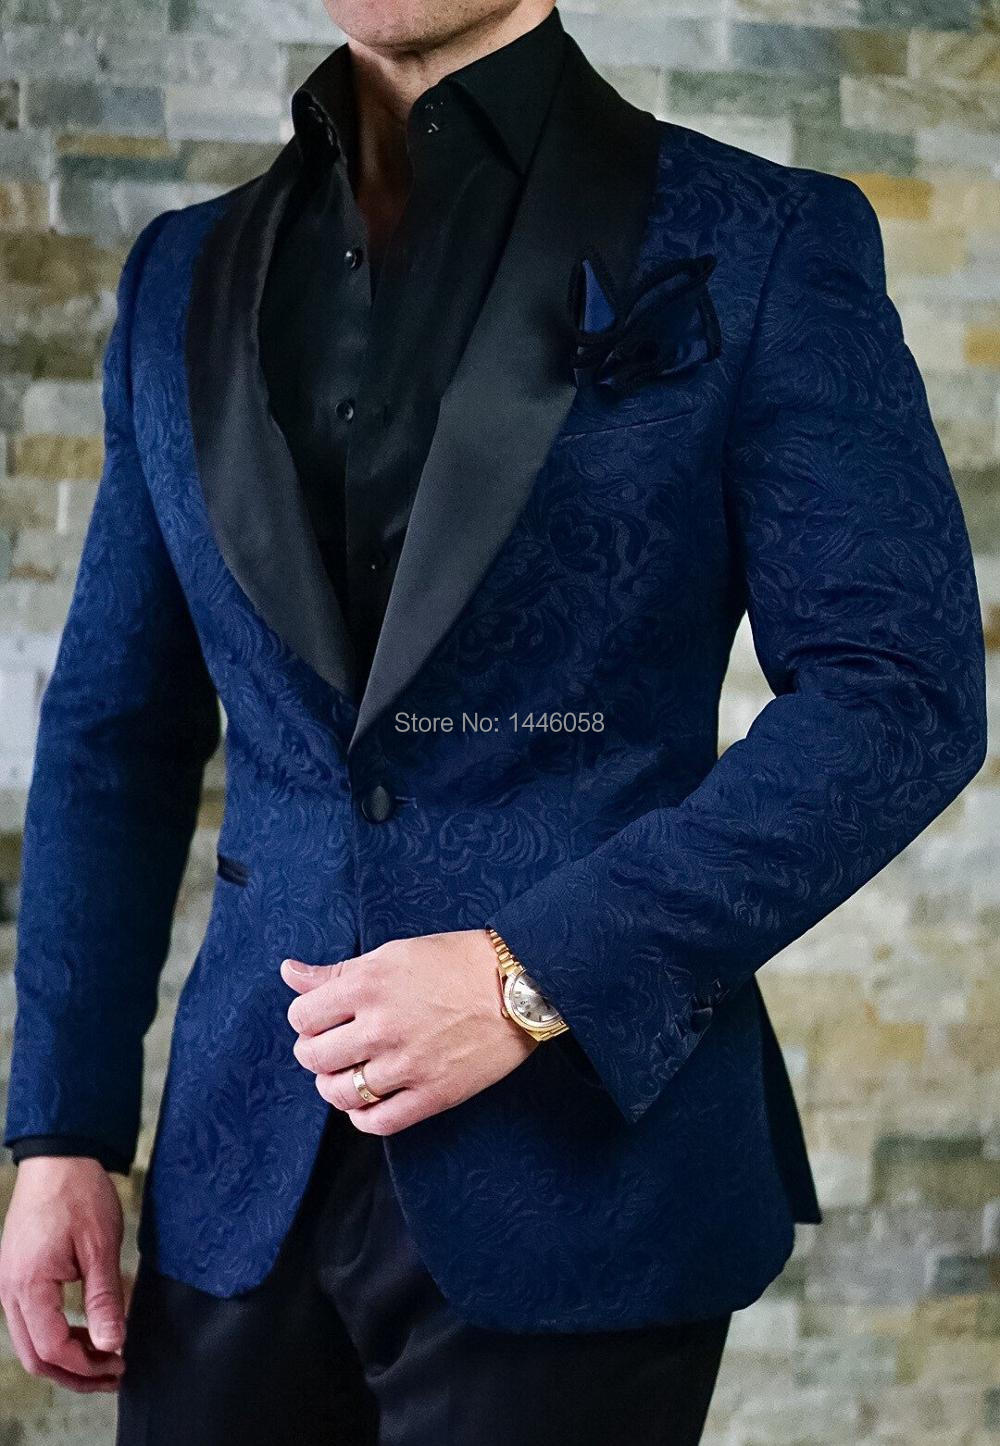 Costume Homme 2018 Gentleman Bespoke Mens Suits Classic Terno Slim Navy Blue Printed Men Suits With Pants Wedding Groom Tuxedos